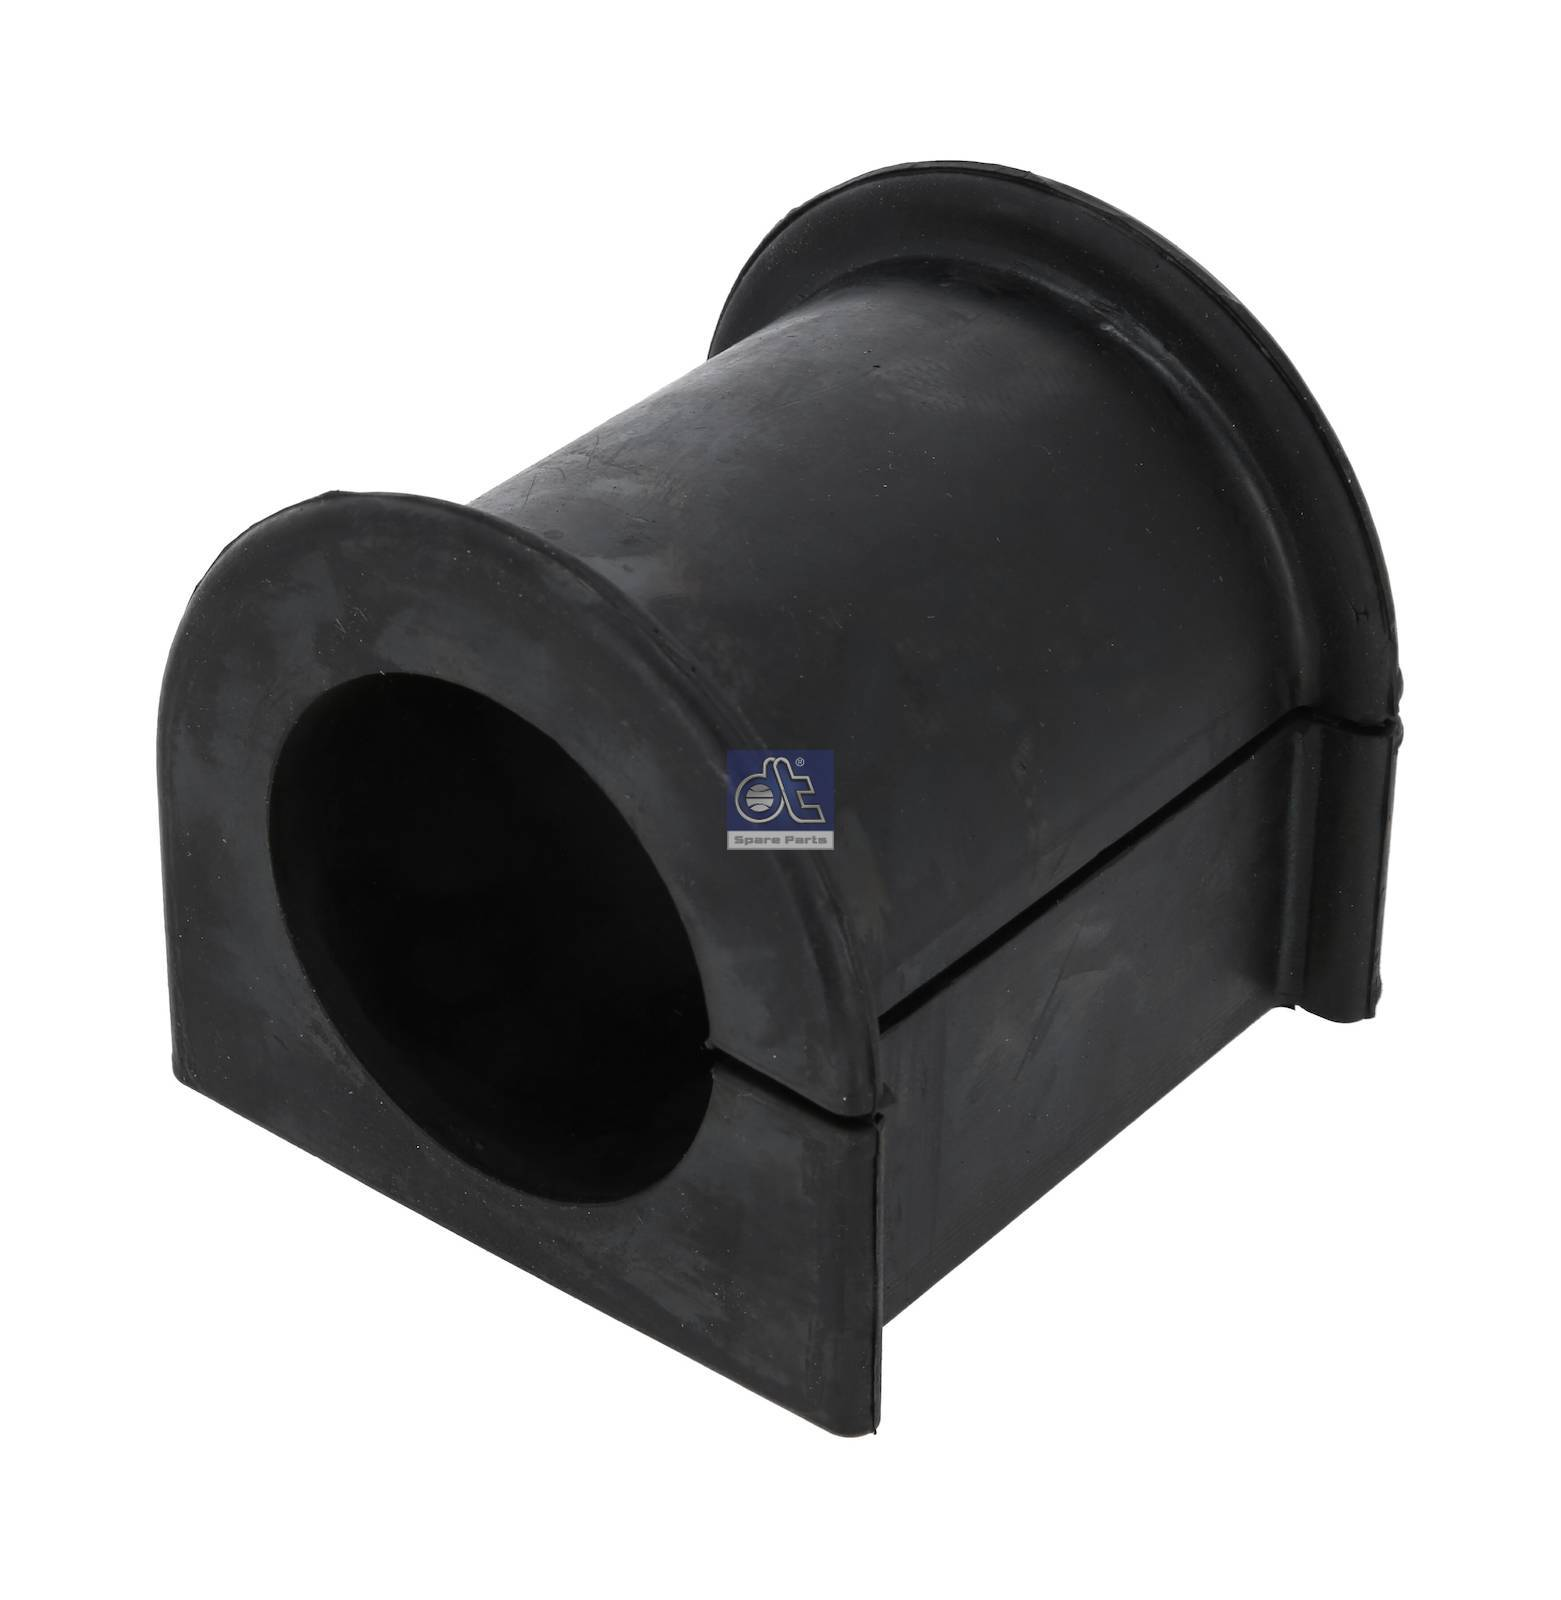 Rubber bushing, stabilizer